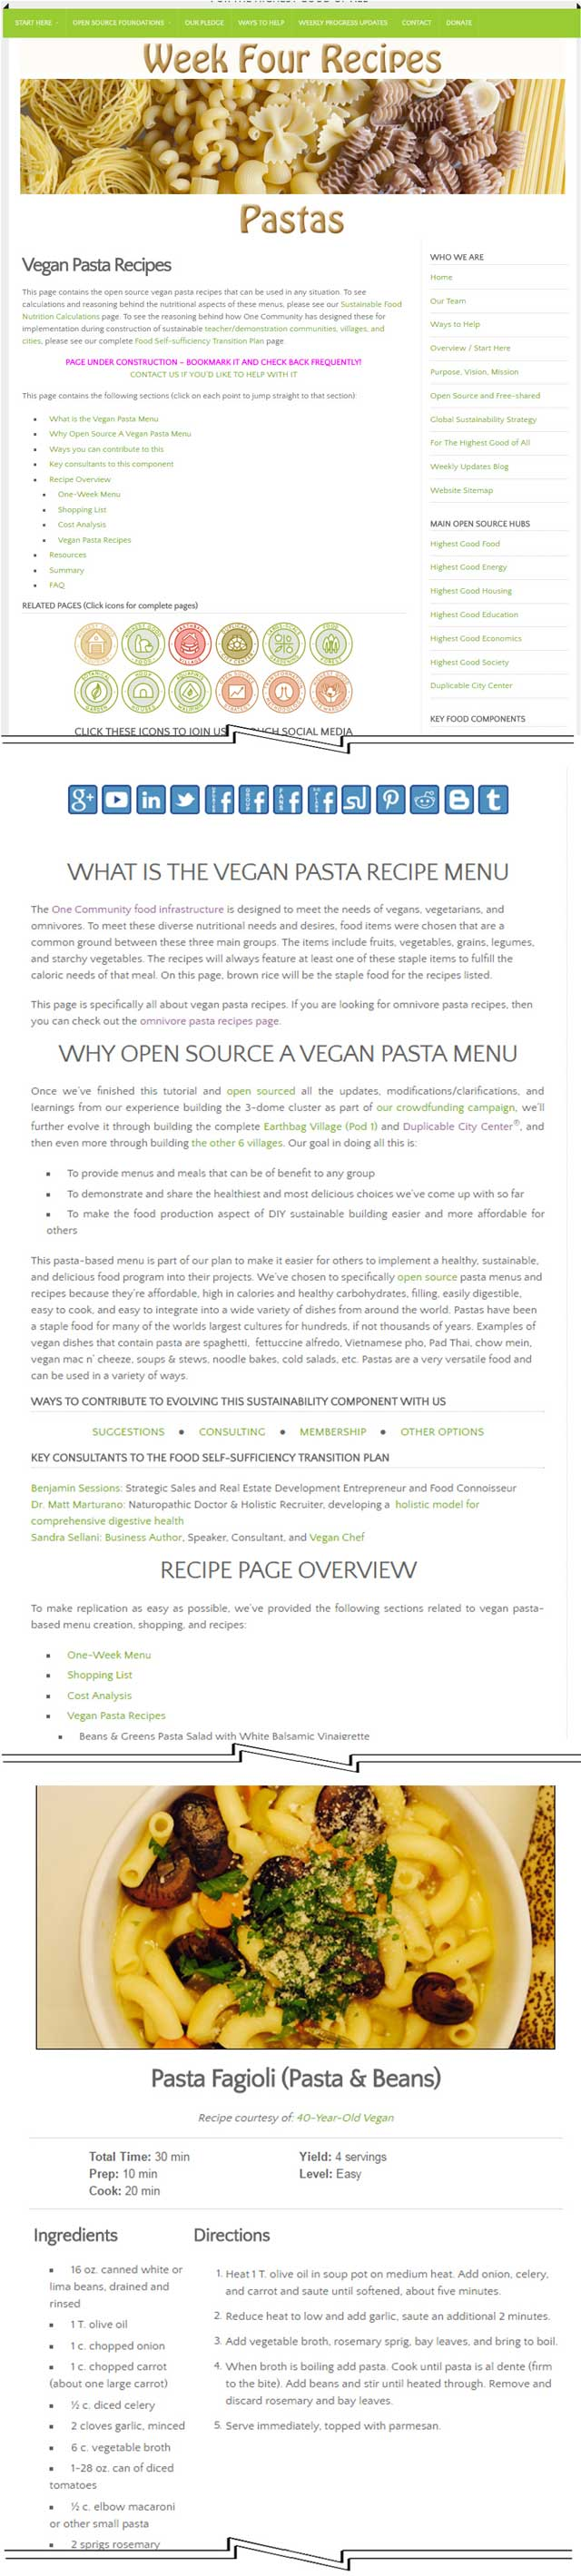 This week, the core team finished reformatting and adding sections to the Vegan Pasta Recipes & Omnivore Pasta Recipes pages, bringing both of the pages to 100% completion. You can see a sample of that work here, on the vegan pasta recipe page: